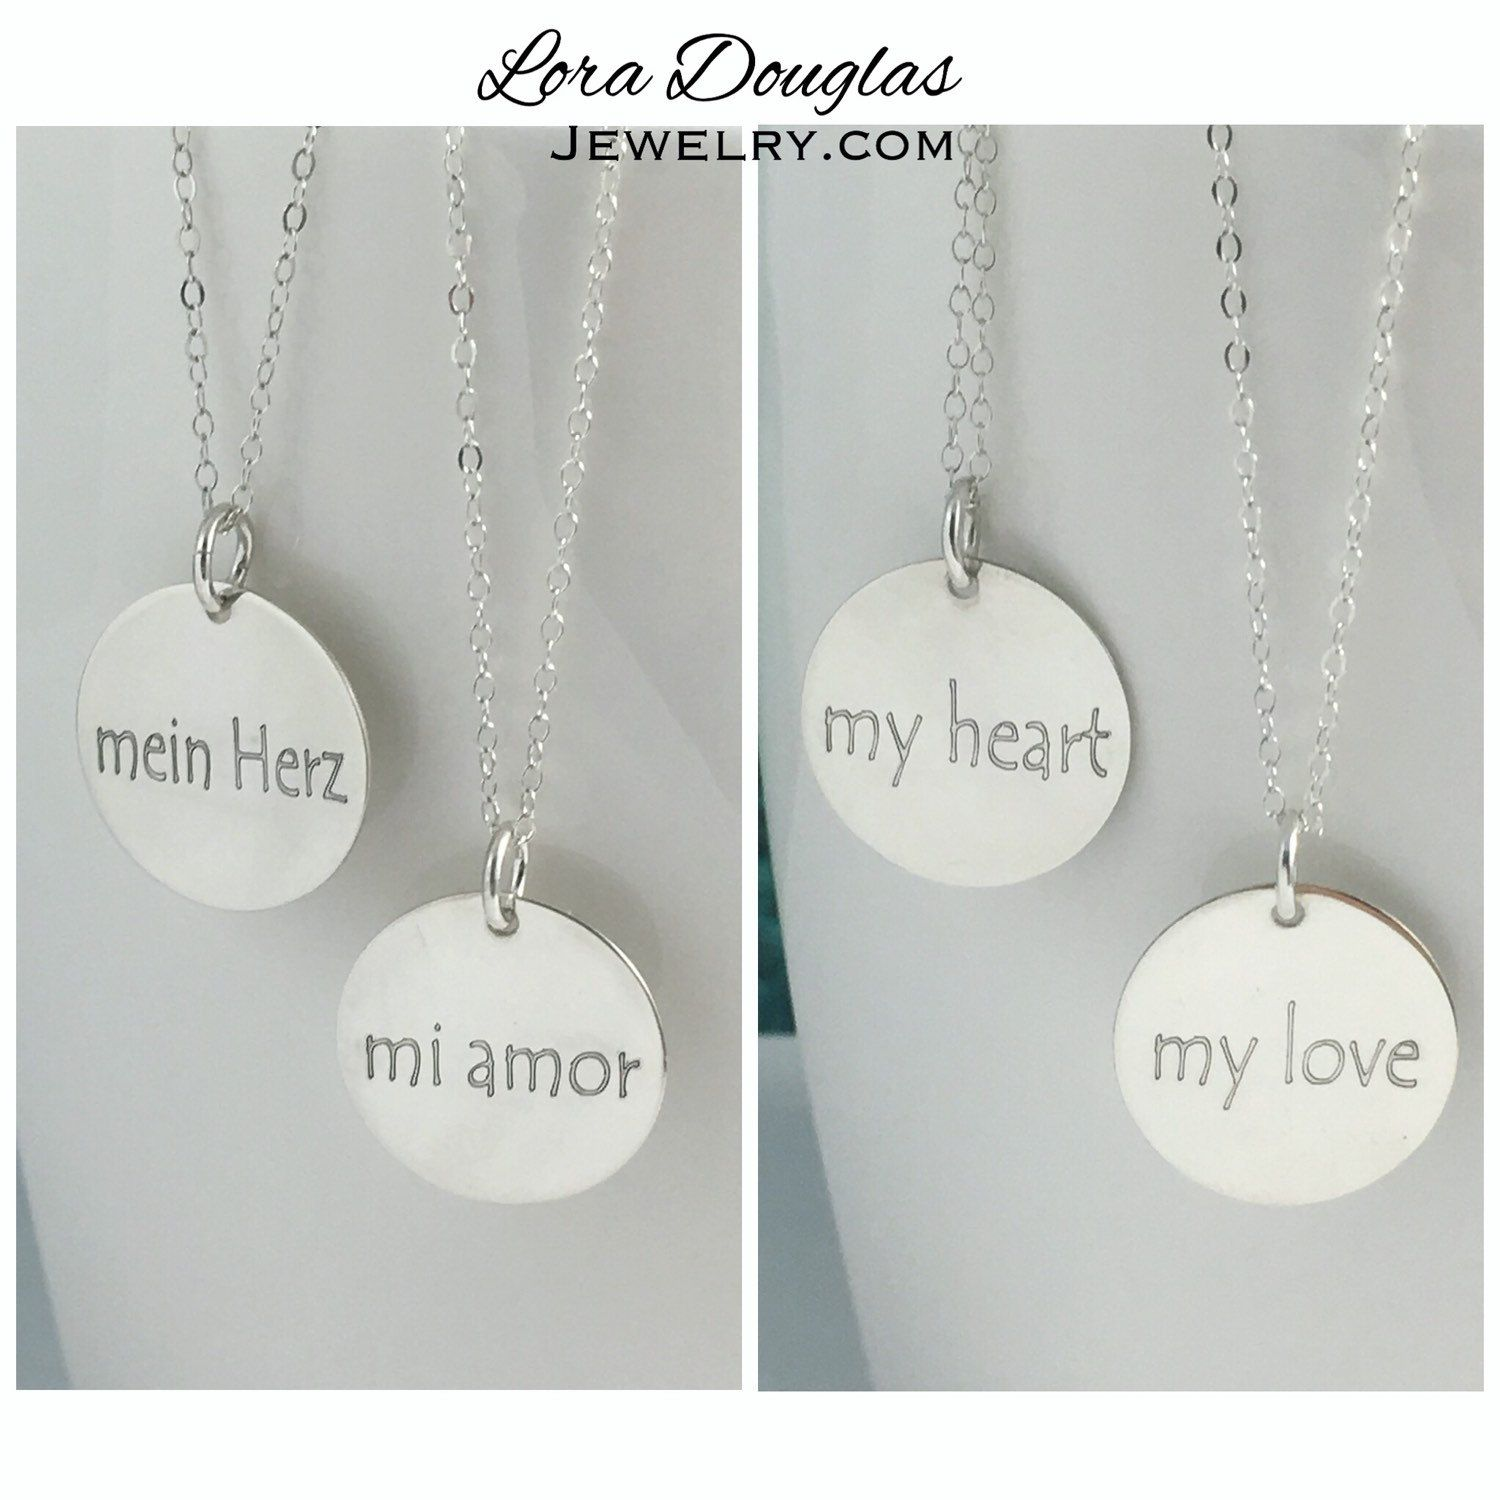 22++ Where can i buy engraved jewelry info